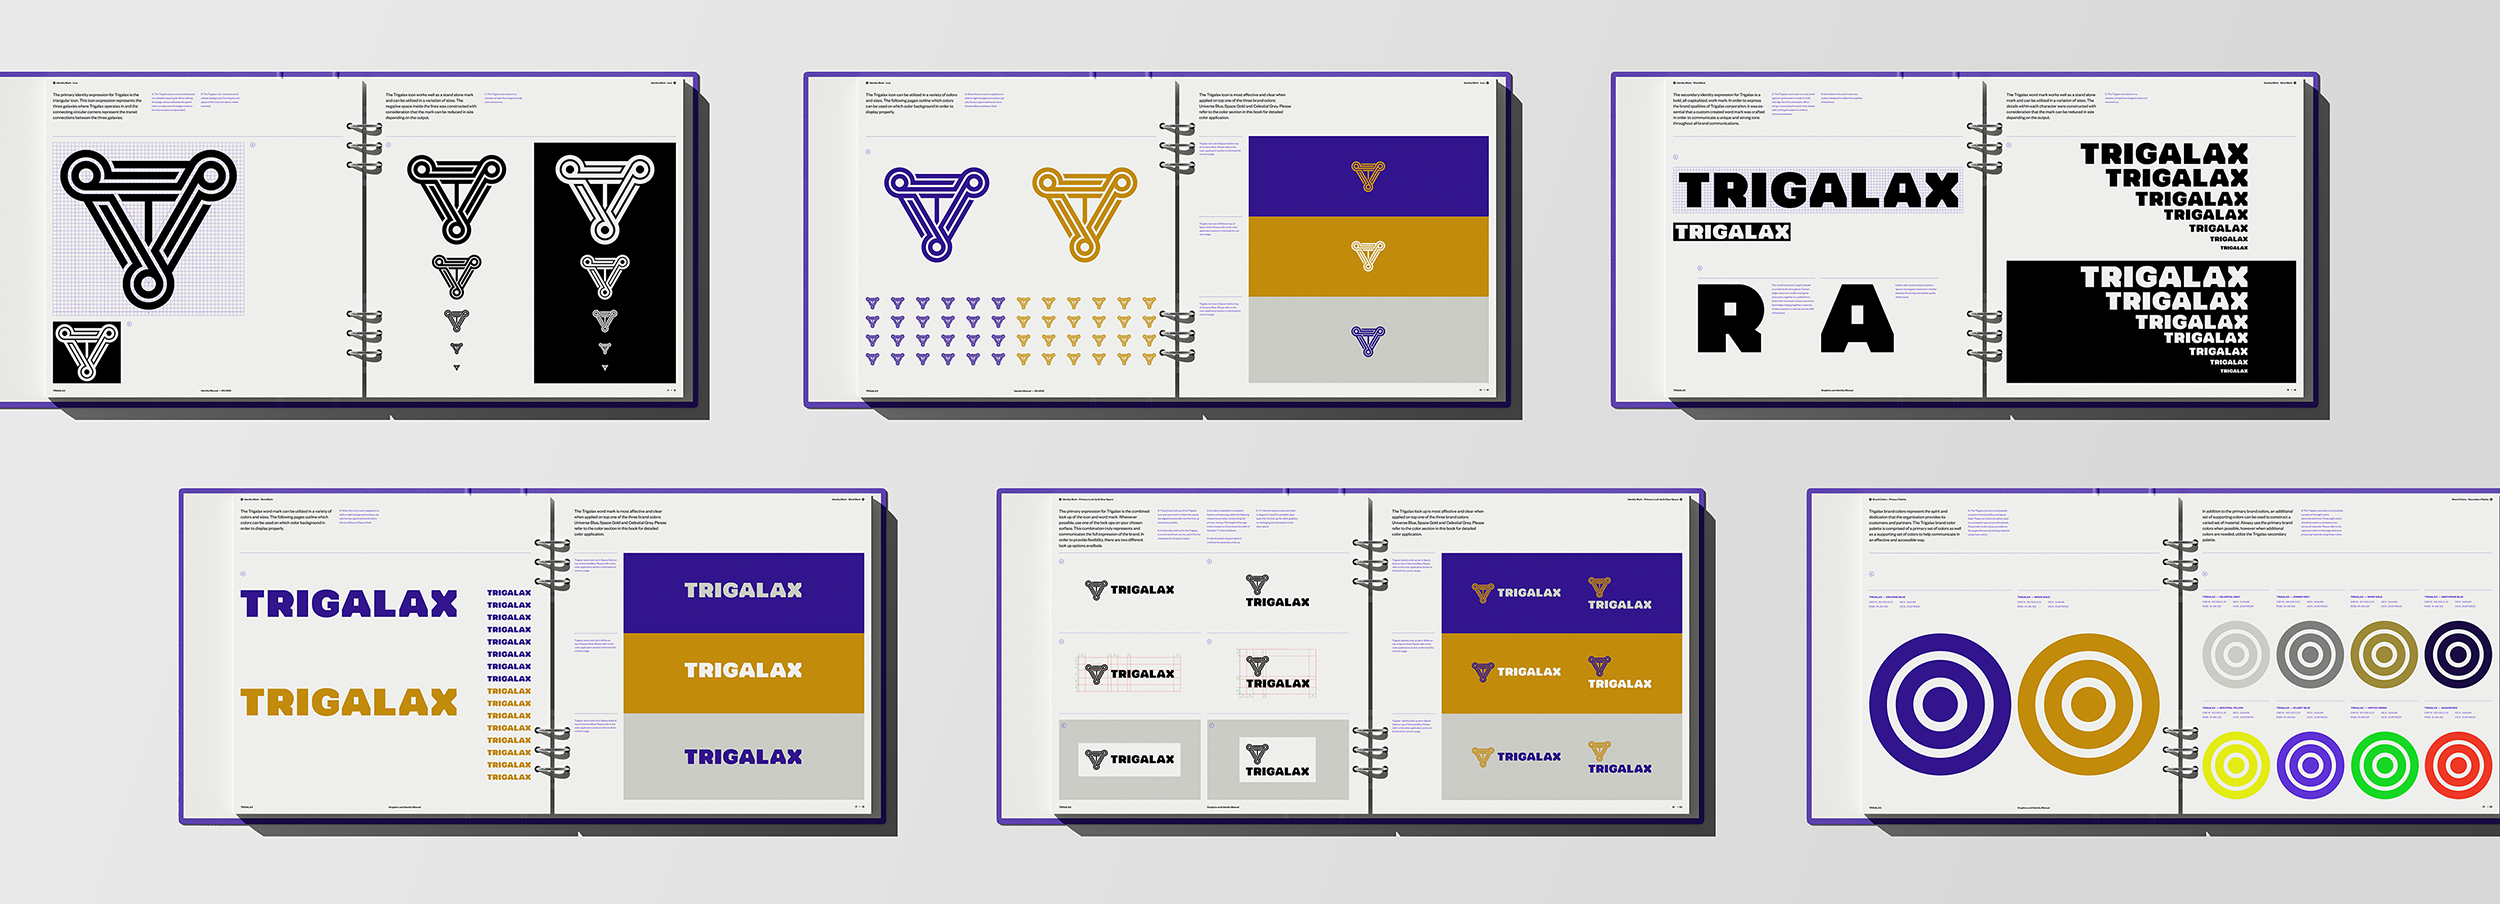 04_Trigalax-Space-Branding-guidelines-02